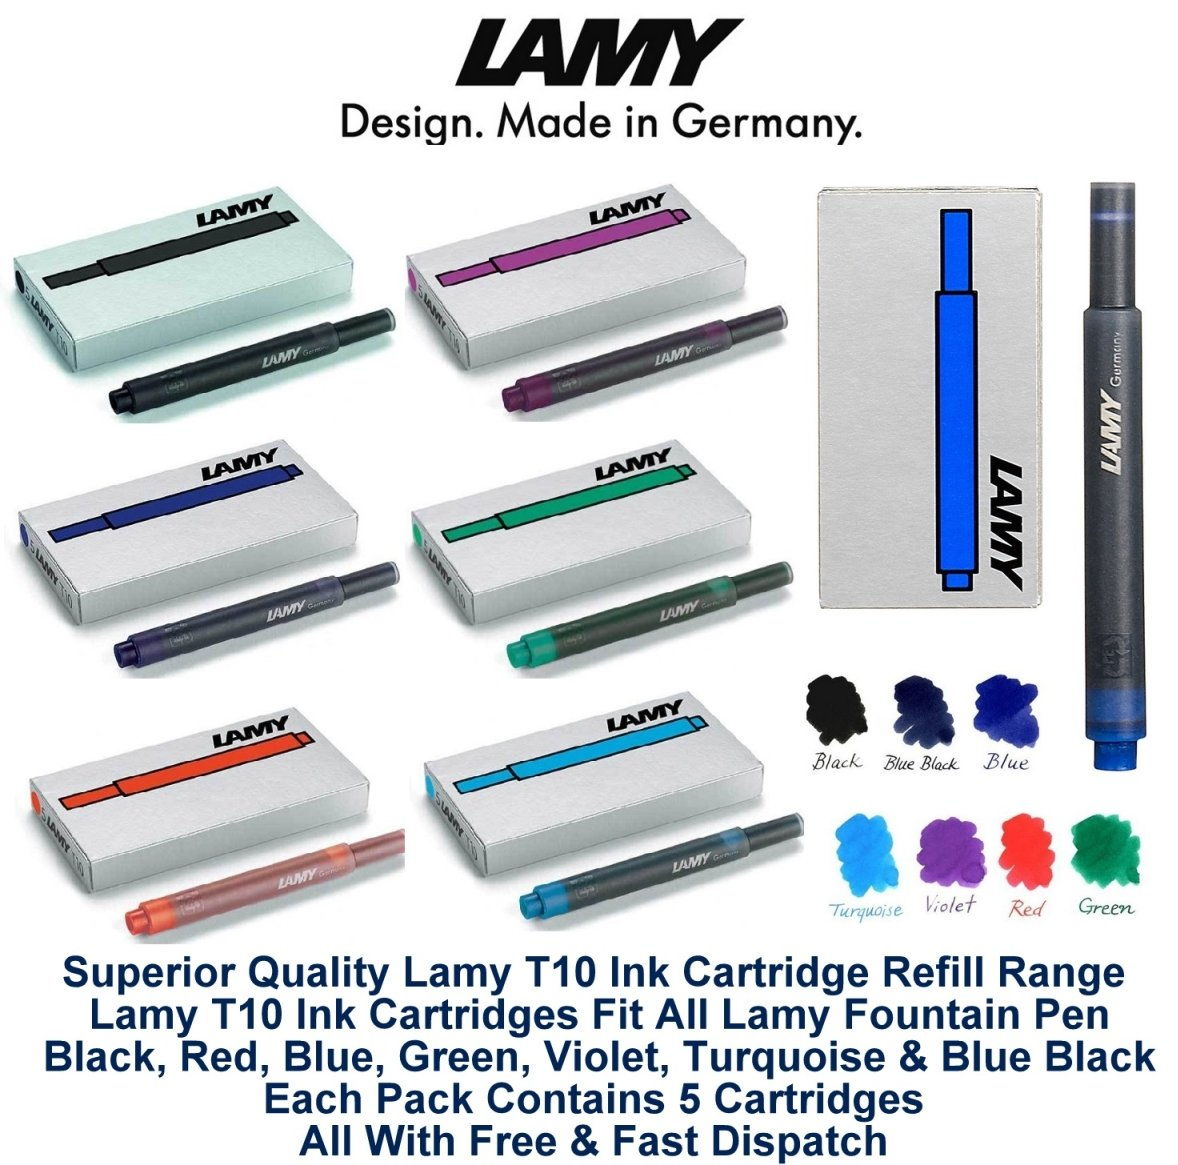 Lamy T10 Assorted Colour Pack Fountain Pen Ink Cartridges Refills Spare Replacement For All Lamy Fountian Pens (1 Pack Of Each Colour - 7 Packs - 35 Cartridges - Black, Red, Washable Blue, Green, Purp